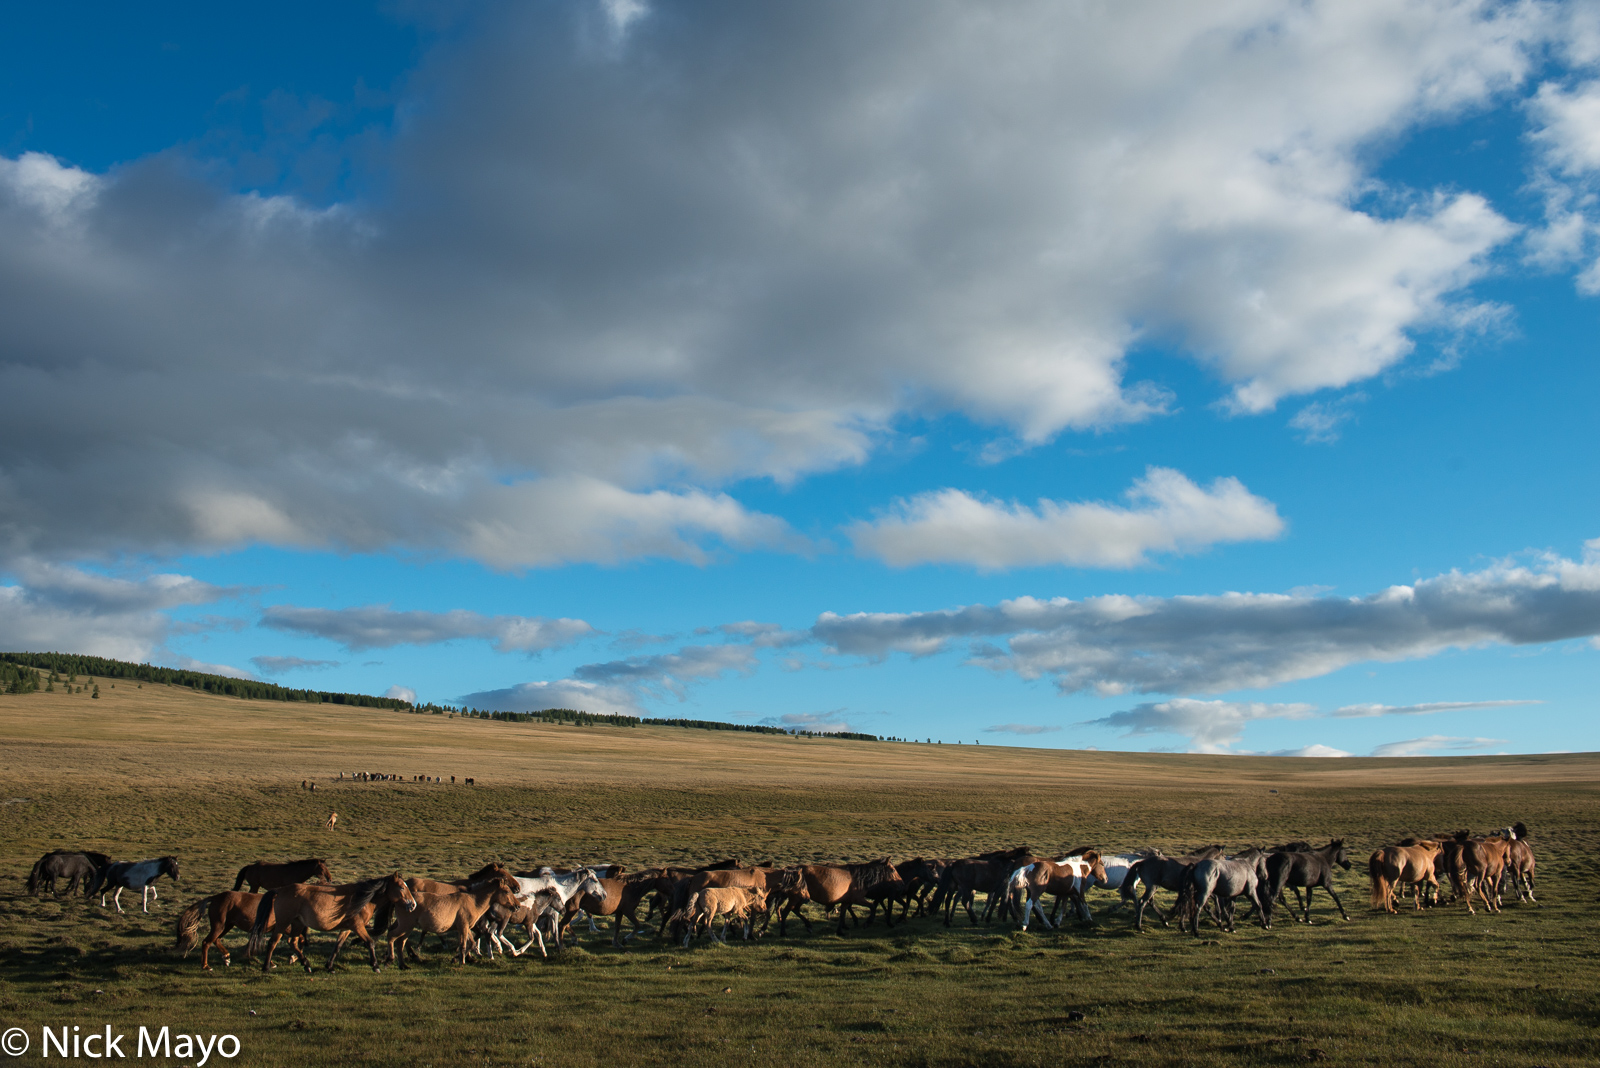 A horse herd galloping on the Alag-Erdene steppe.